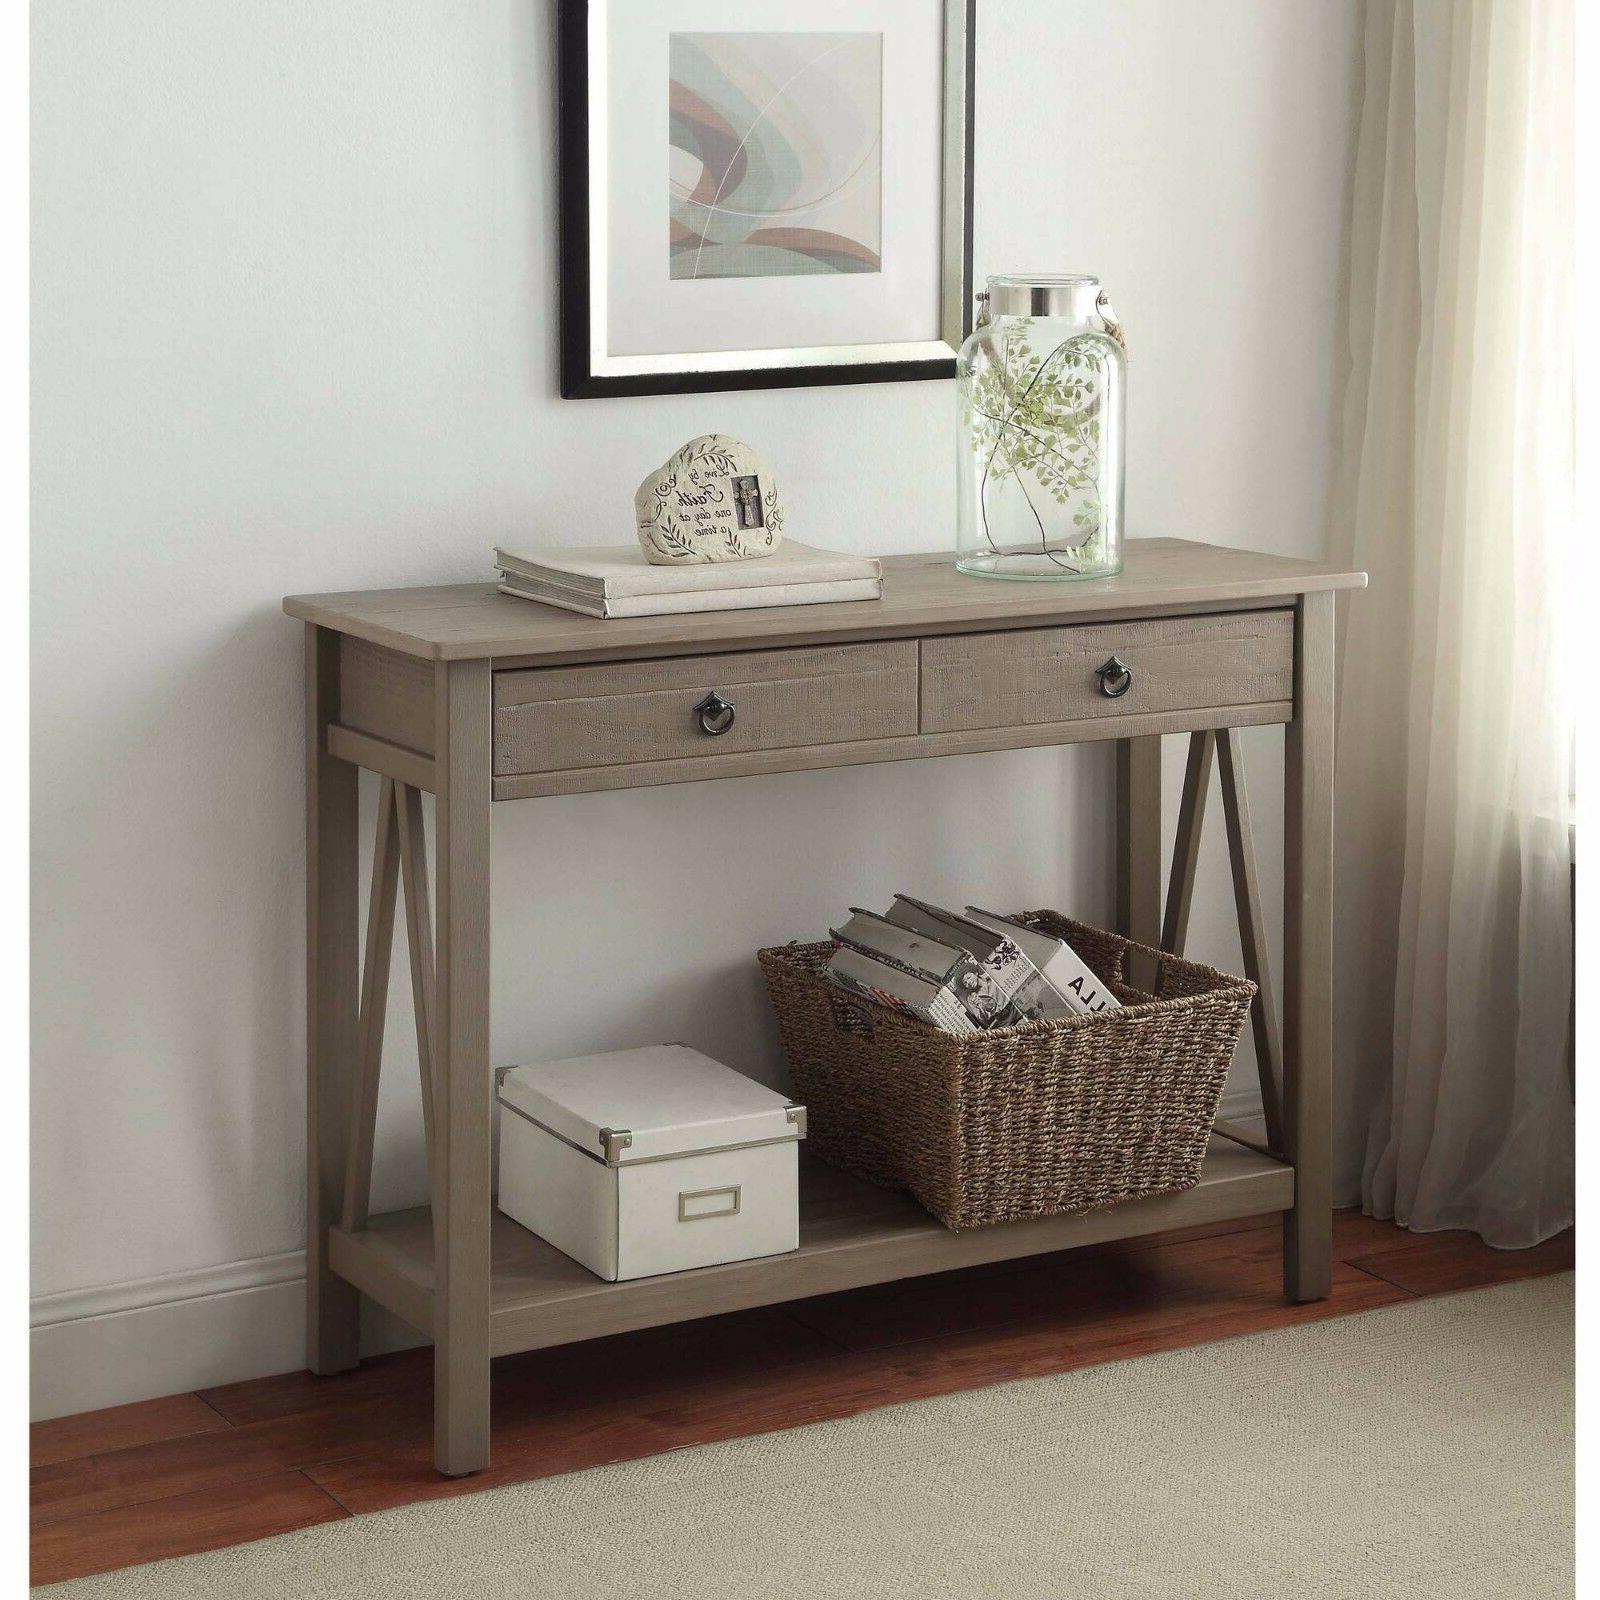 Console in Rustic Woodgrain Gray Finish Sofa Table 2 Drawers Entryway